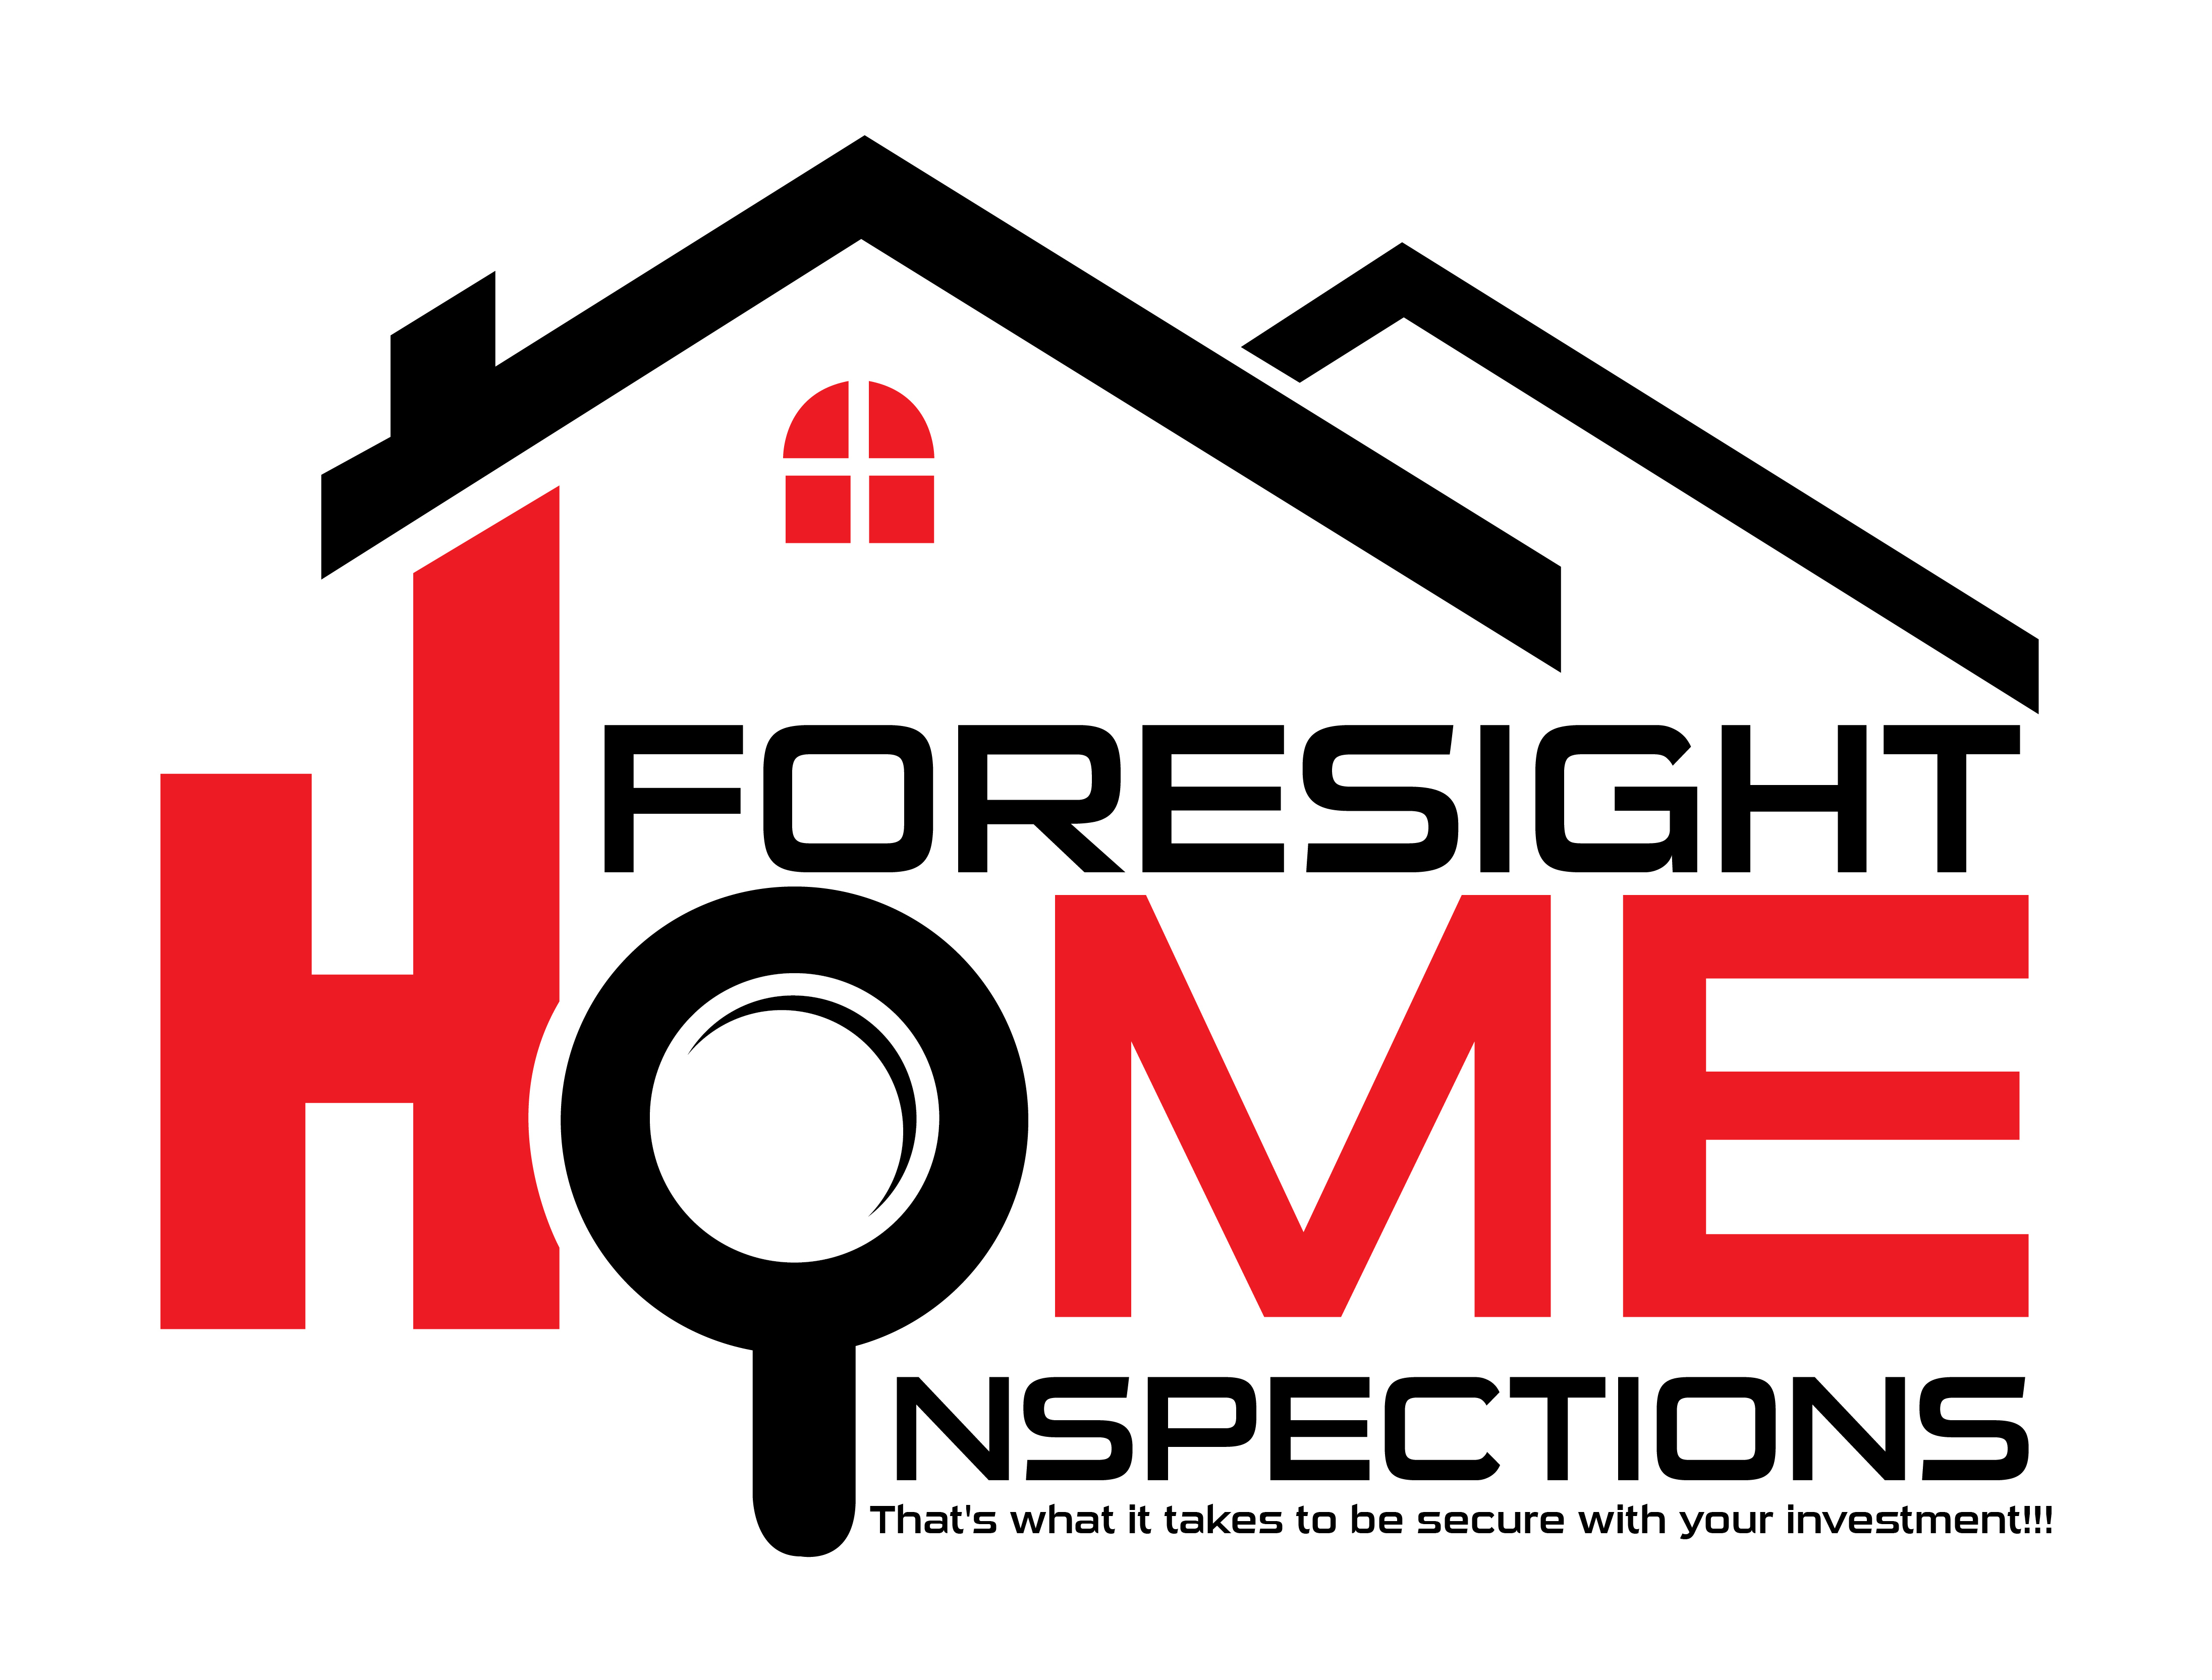 FORESIGHT HOME INSPECTIONS LLC